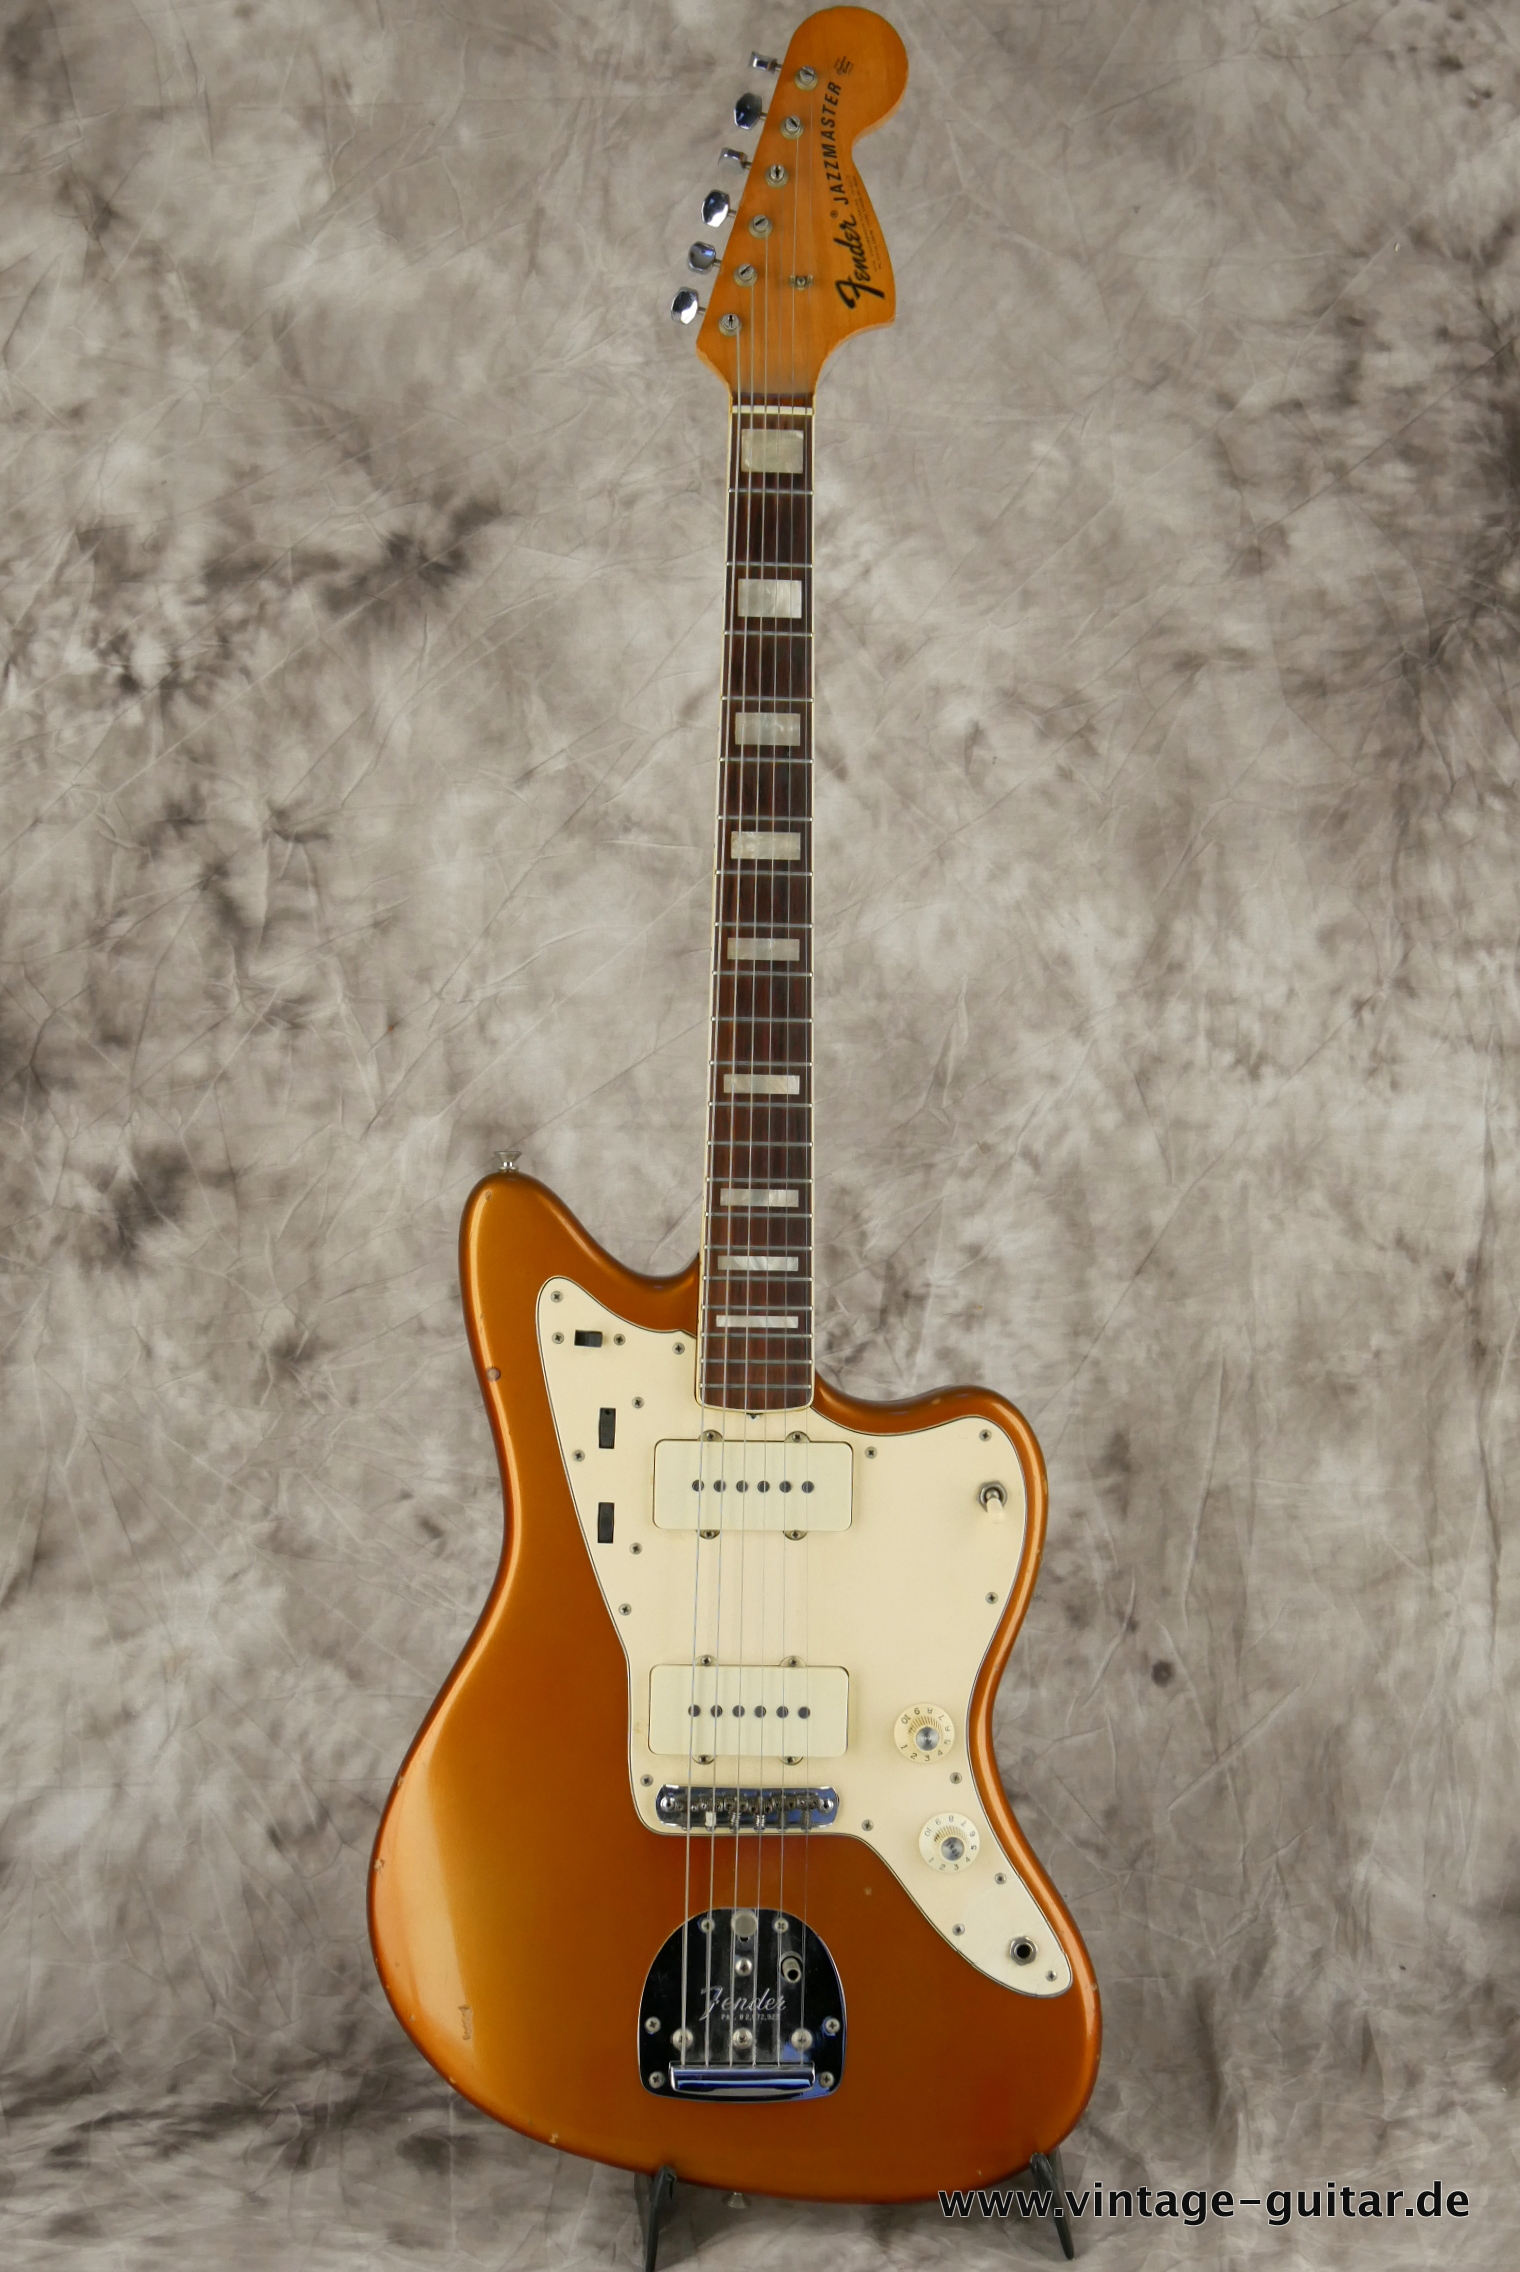 img/vintage/3230/Fender-Jazzmaster-1973-candy-apple-red-001.JPG